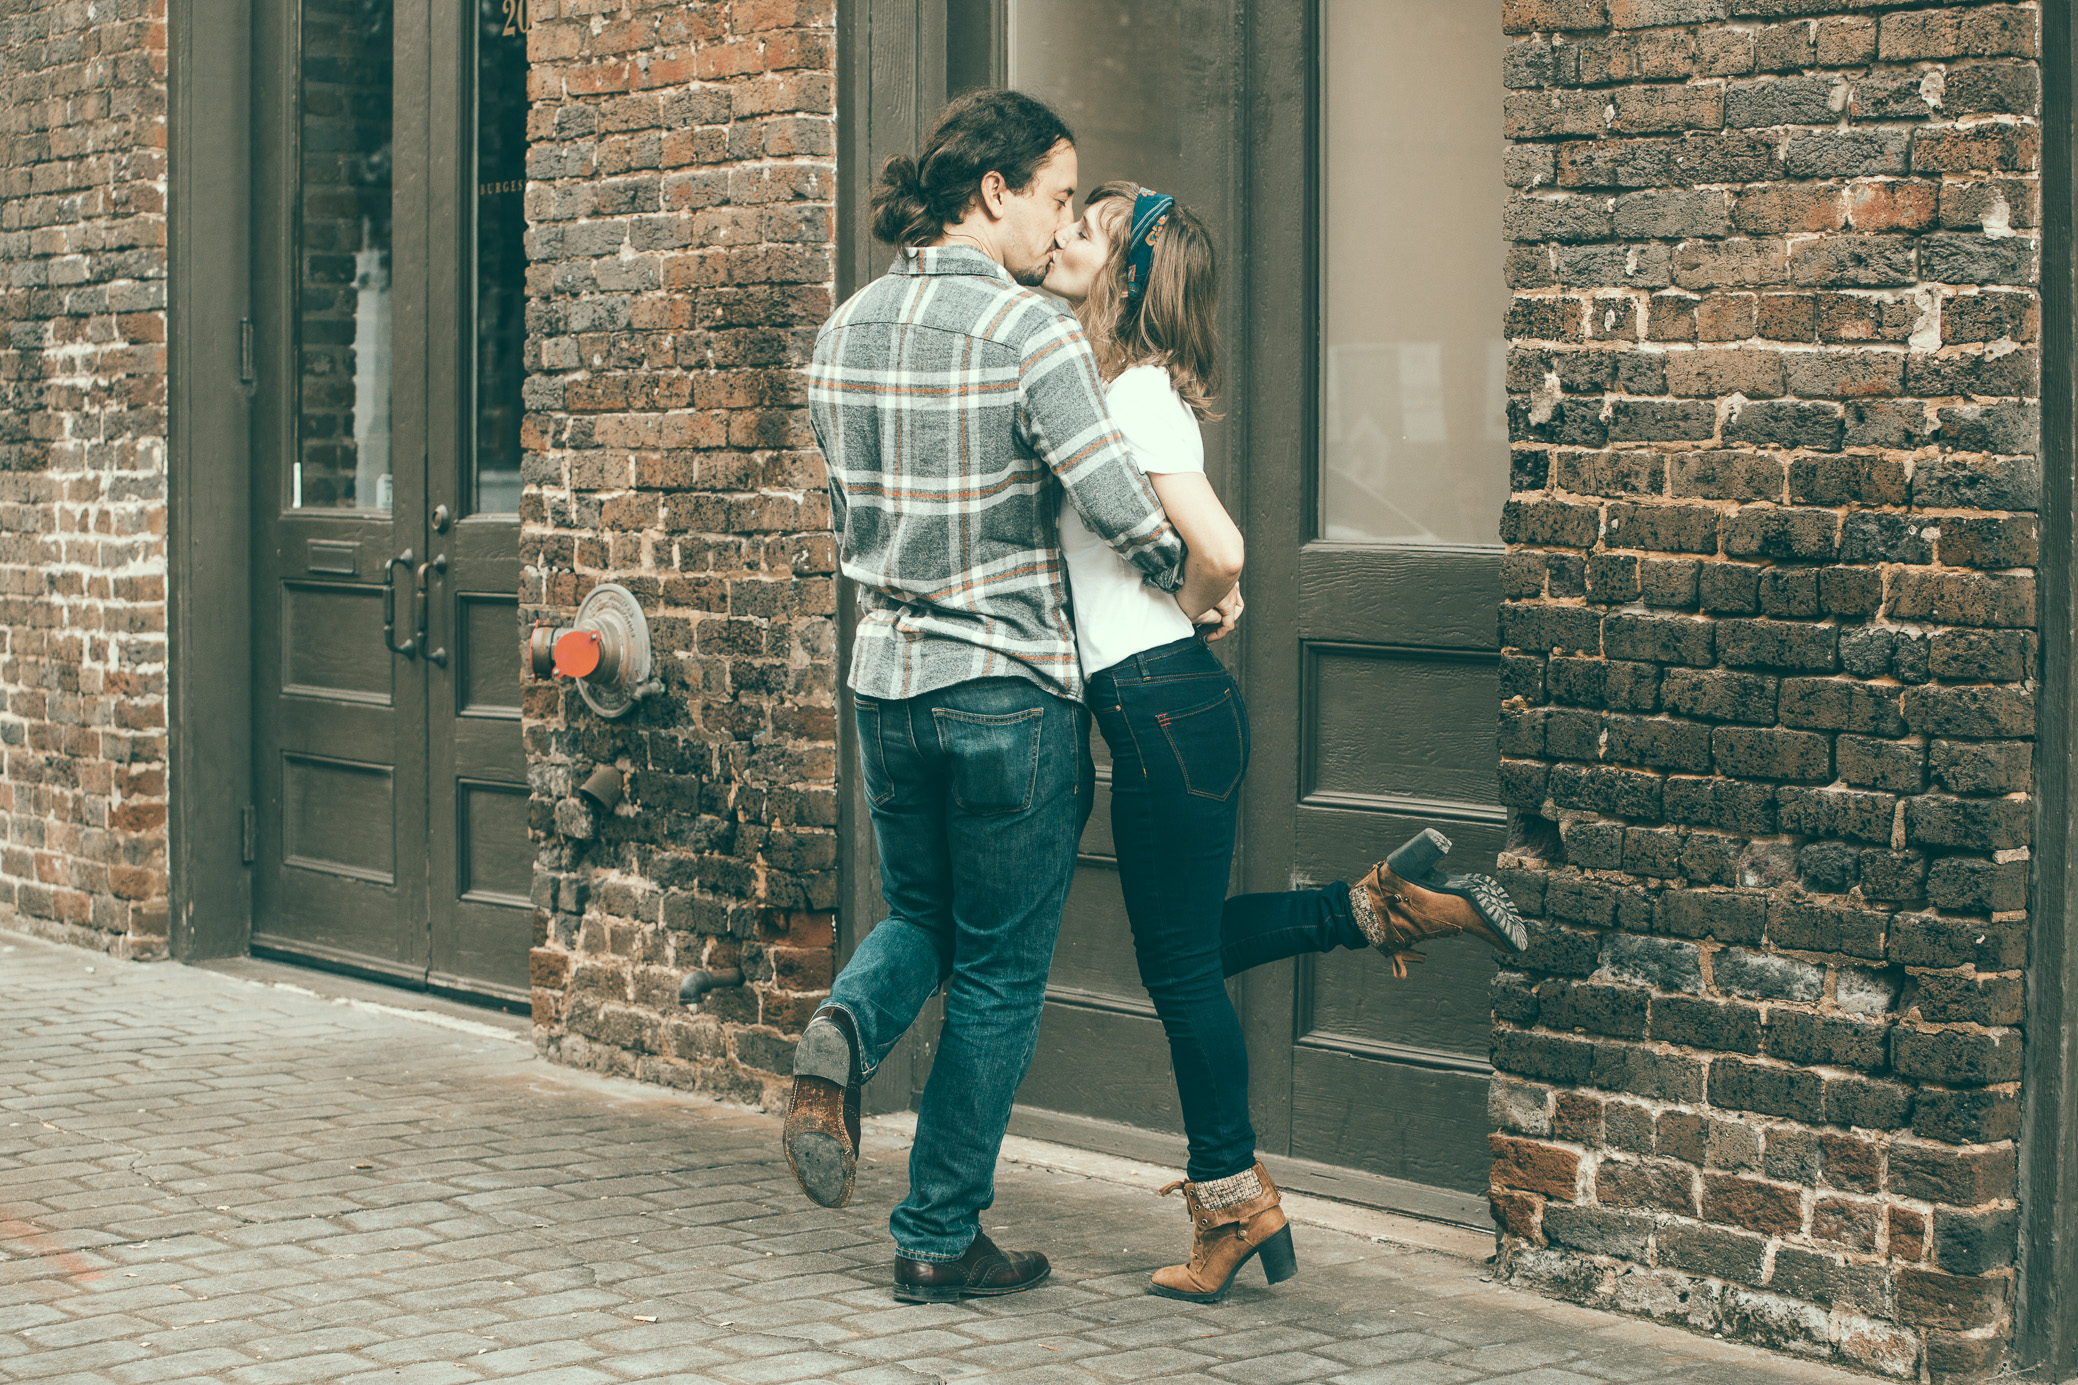 Engagement photography in the Morris Avenue area in Birmingham, Alabama by David A. Smith of DSmithImages Wedding Photography, Portraits, and Events.